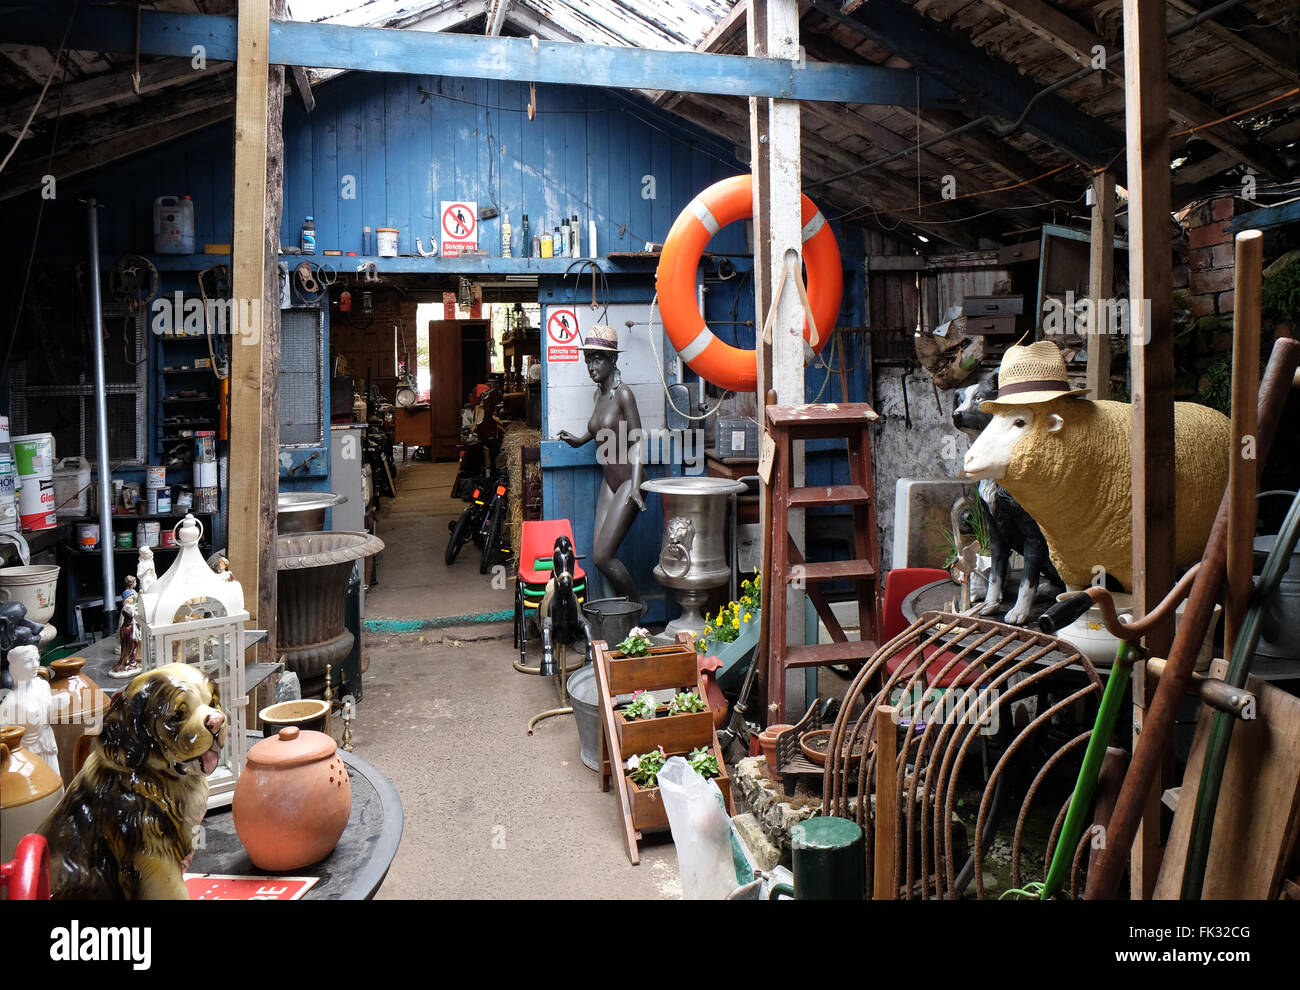 Junk shop selling a bizarre range of old recycled products - Stock Image